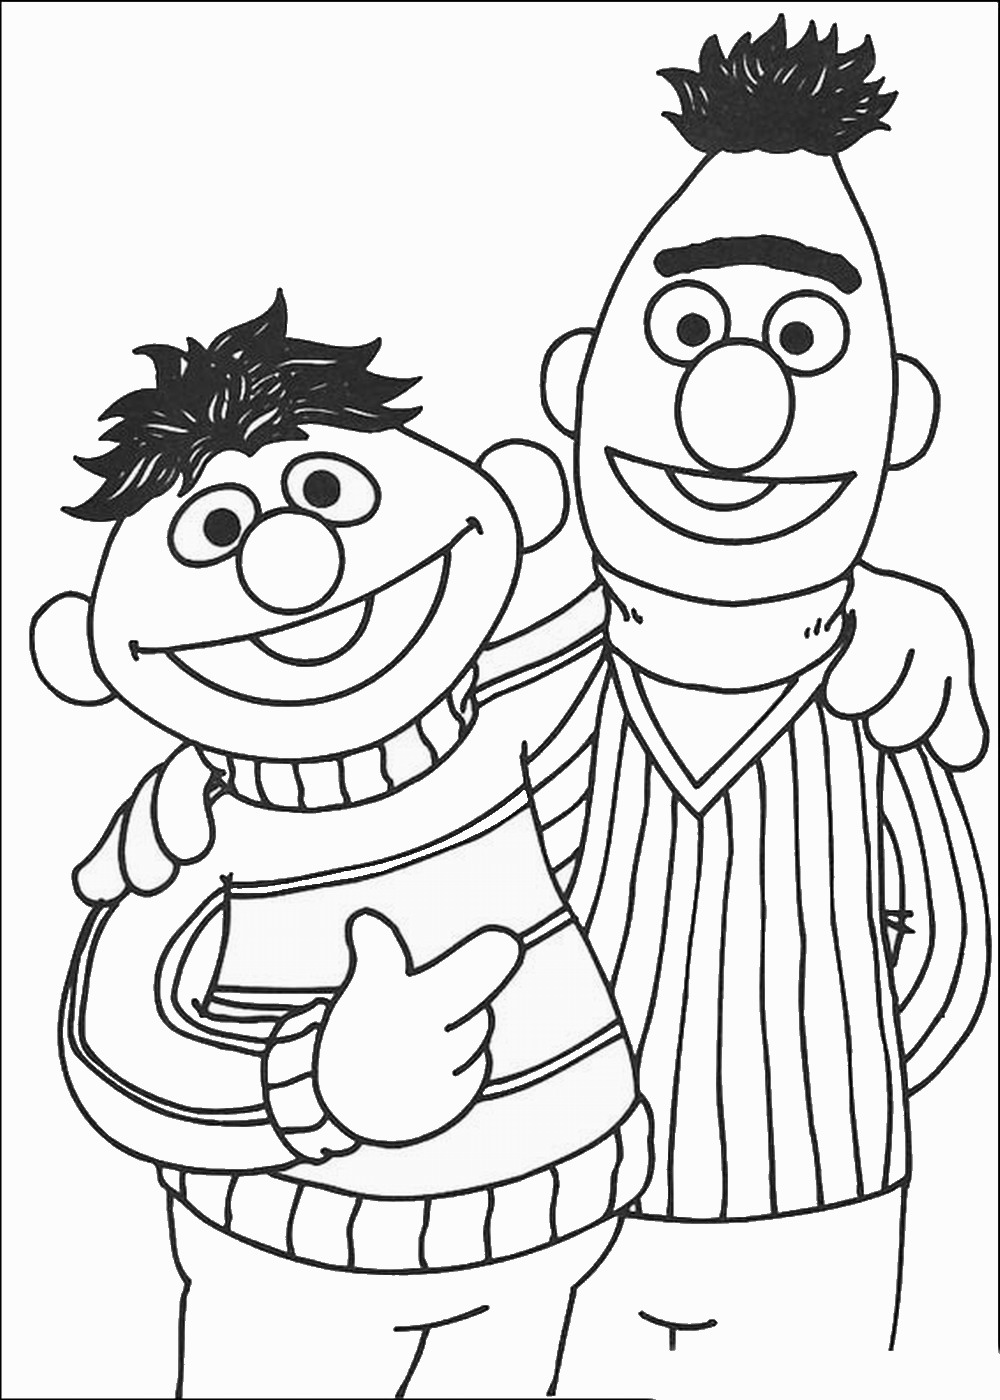 coloring pages of sesame street characters sesame street to download sesame street kids coloring pages street of characters pages sesame coloring